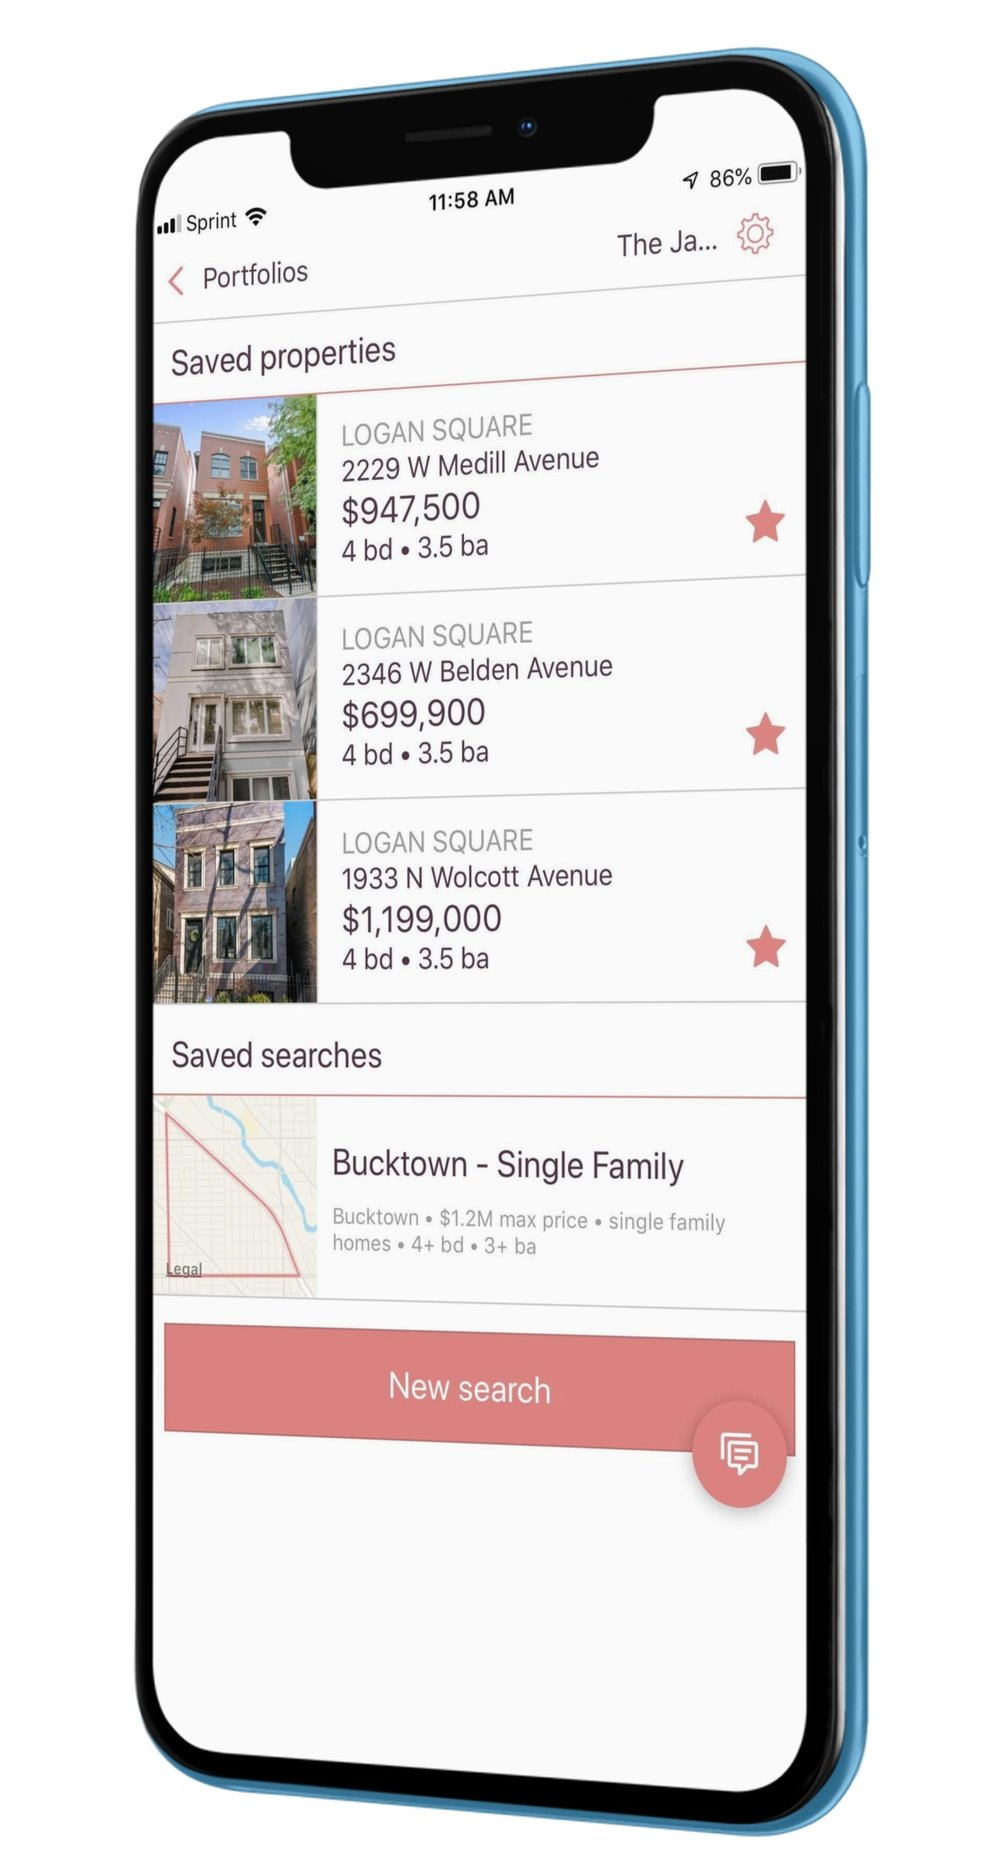 a home buying hq - Sign up free and invite collaborators in your home buying journeyAll real-time MLS listings with new listing alerts and activity notificationsCreate saved searches by neighborhood, school, and more